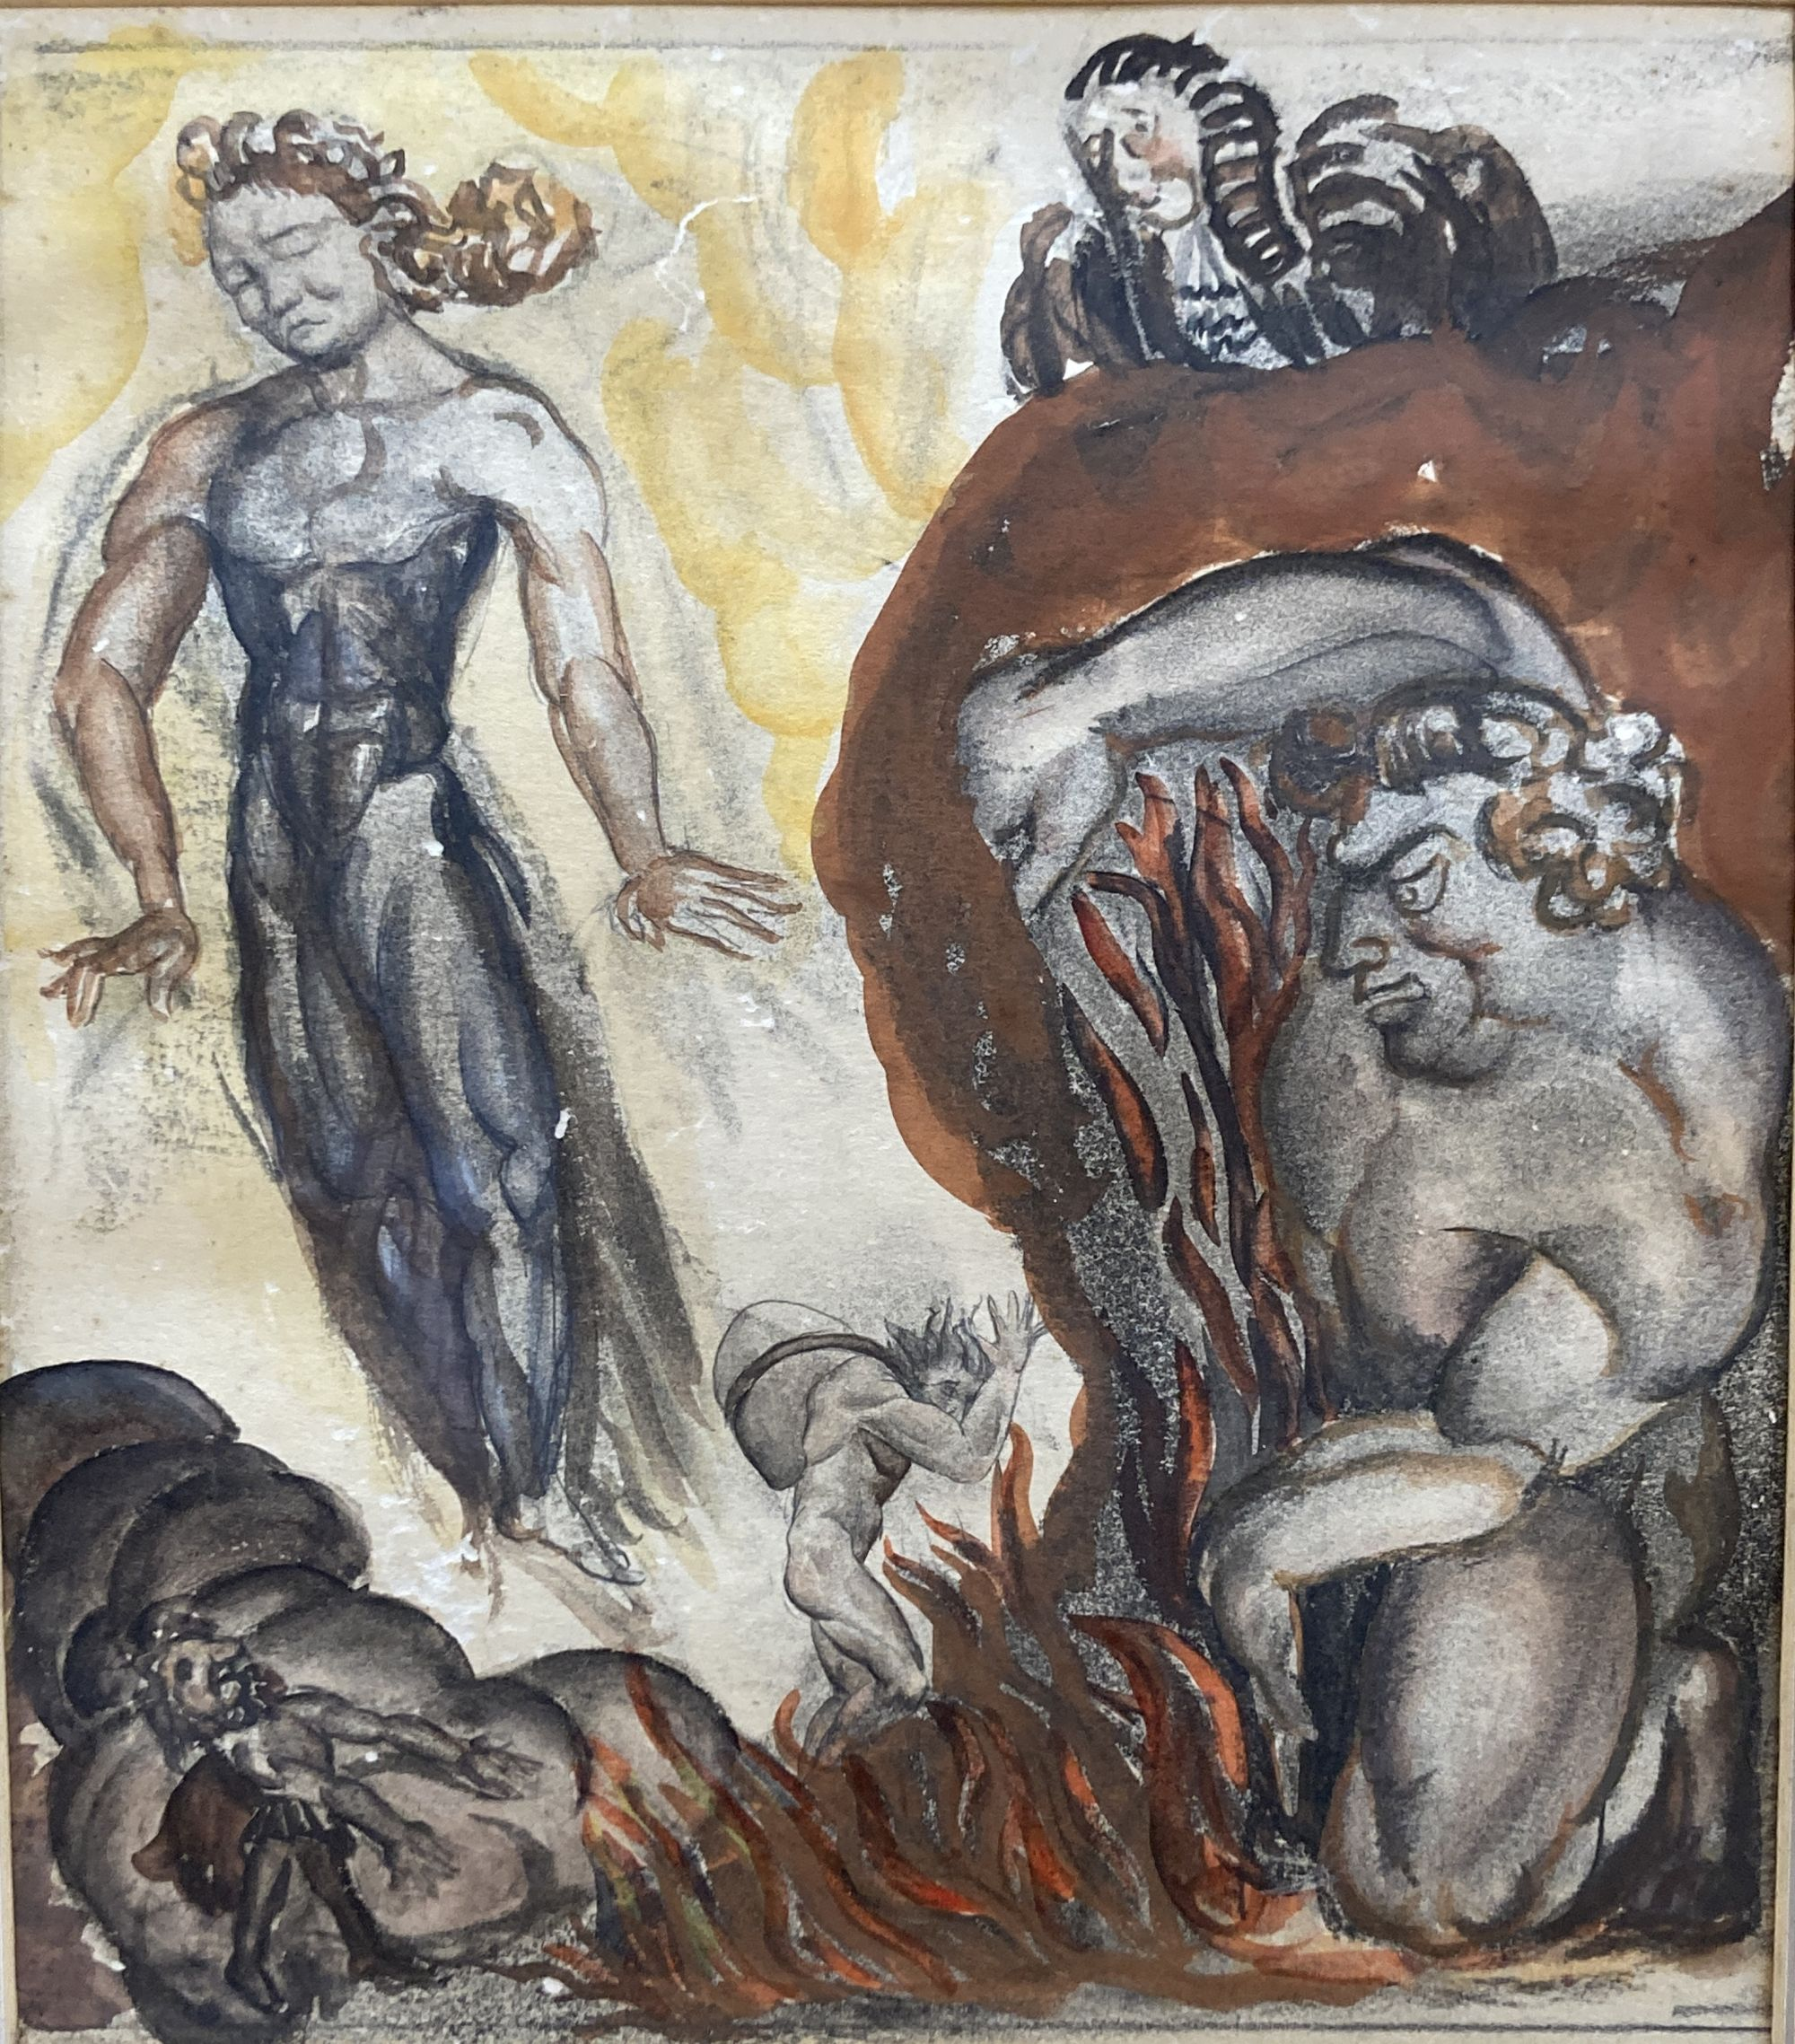 Catherine Moody (1920-2009), watercolour, 'What dost thou hae Christian?' - Pilgrim's Progress, - Image 3 of 6